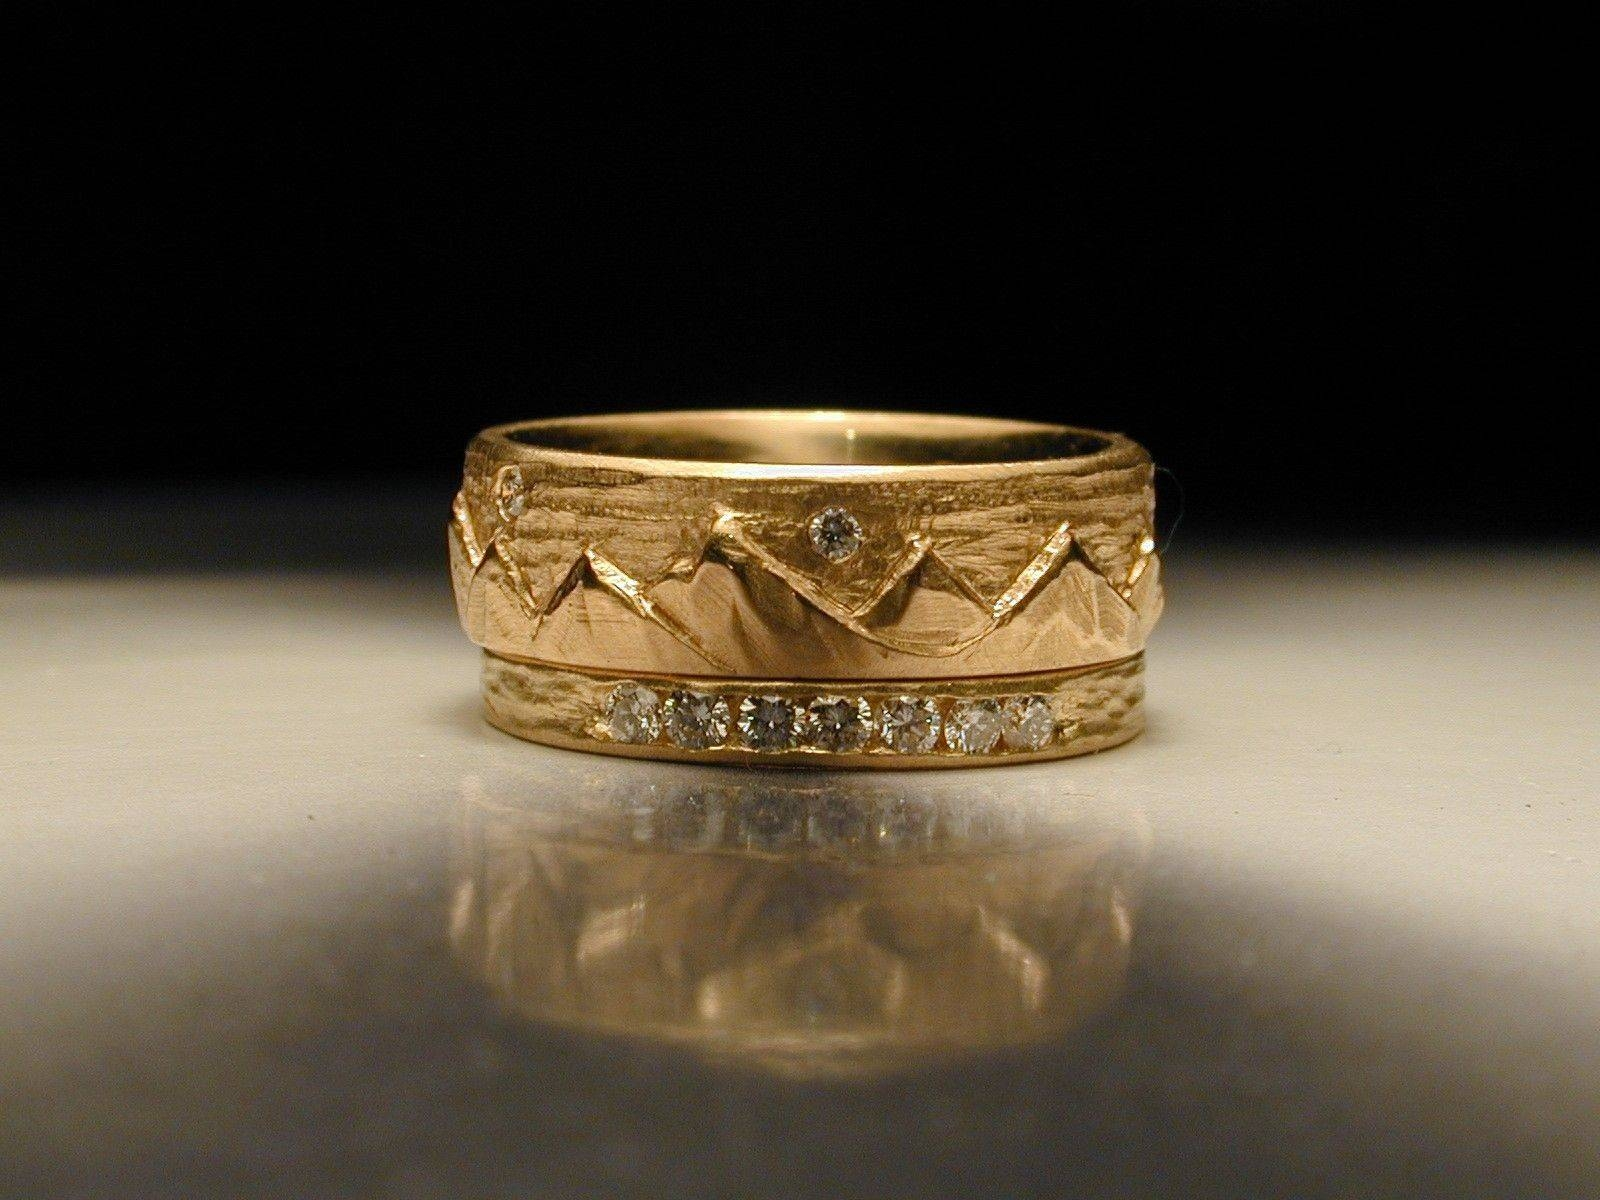 evanston pave jewelry carved rings with christopher fine and vintage wedding elegance engagement duquet engraving ring design chicago